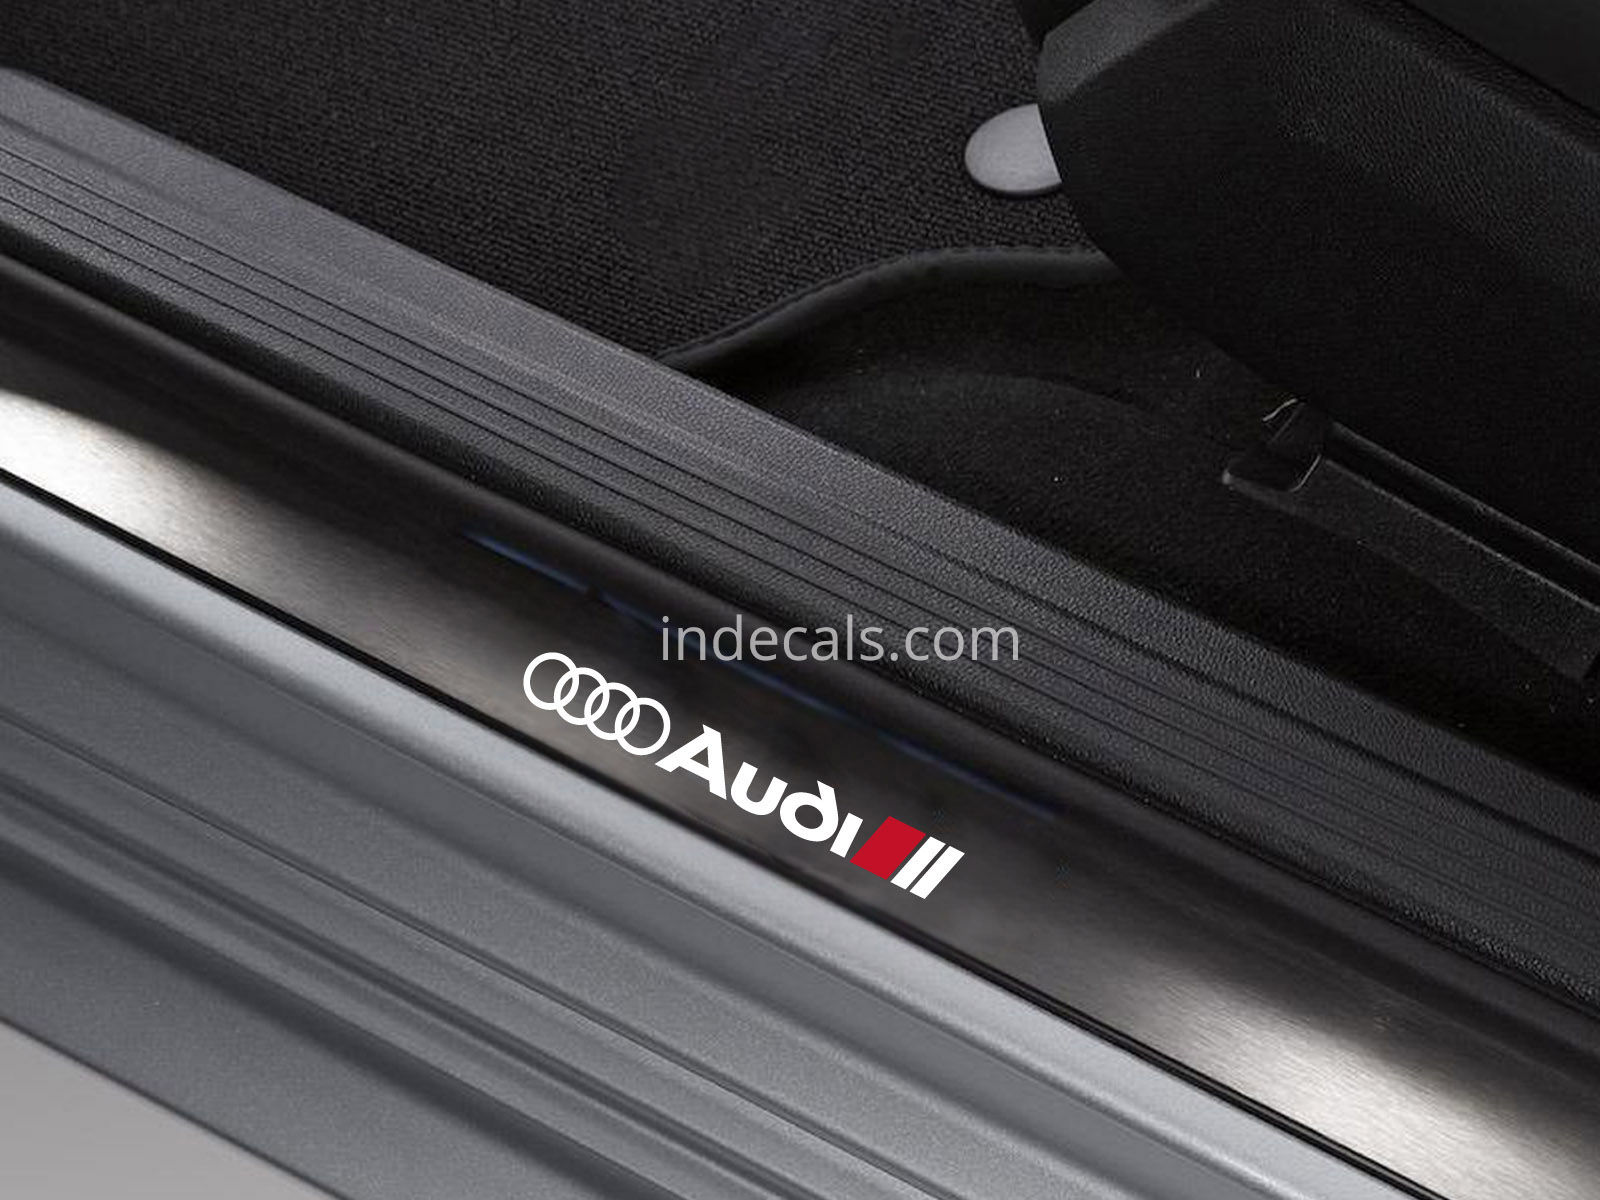 6 x Audi Stickers for Door Sills - White